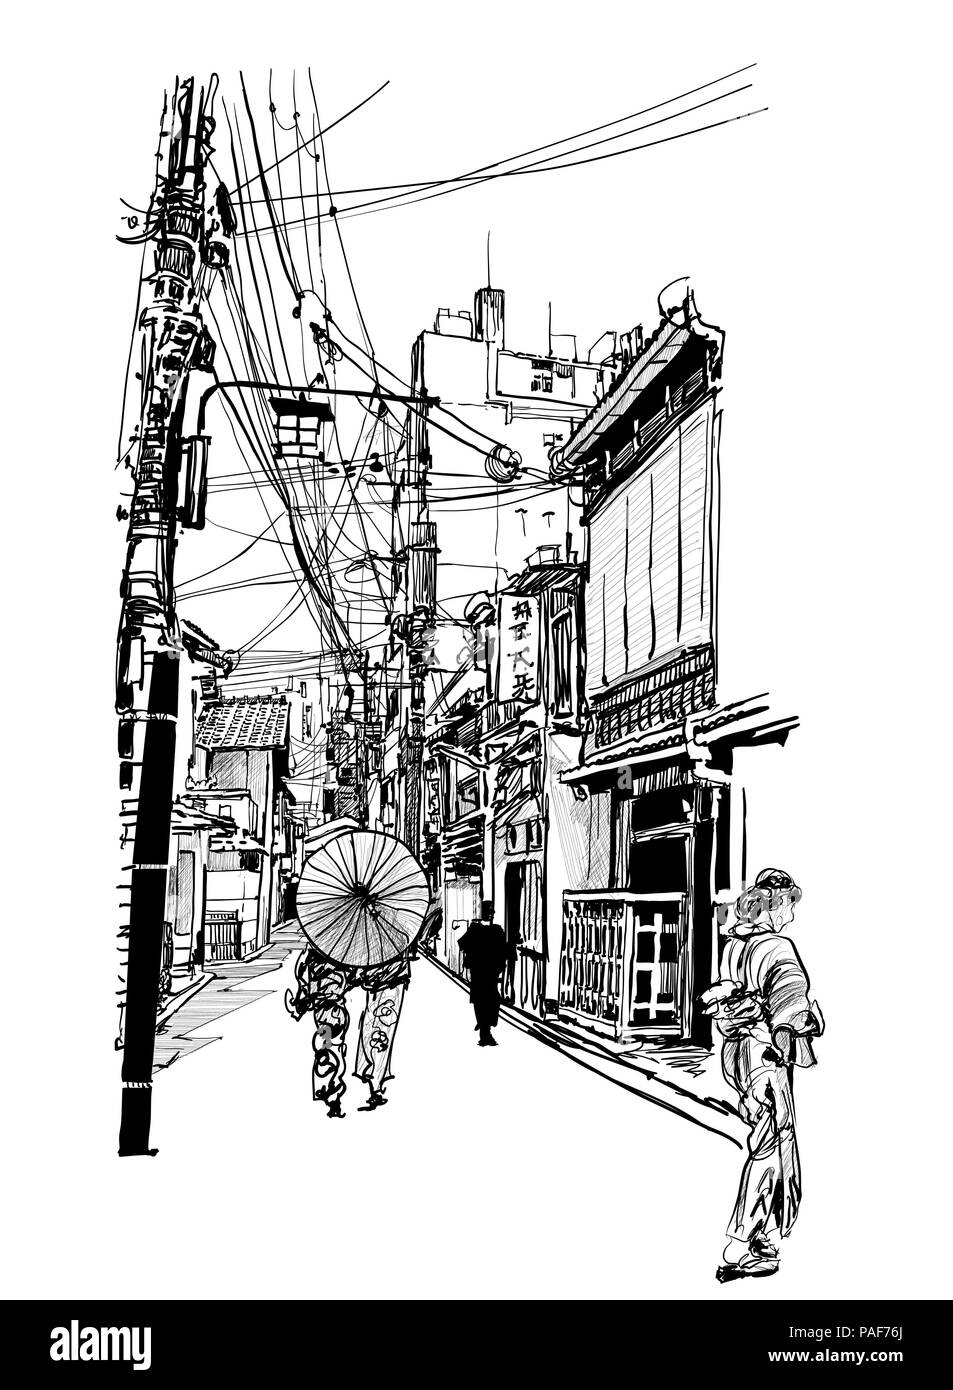 Street in Japan - vector illustration  (japanese caracters are fake - no meaning) - Stock Image